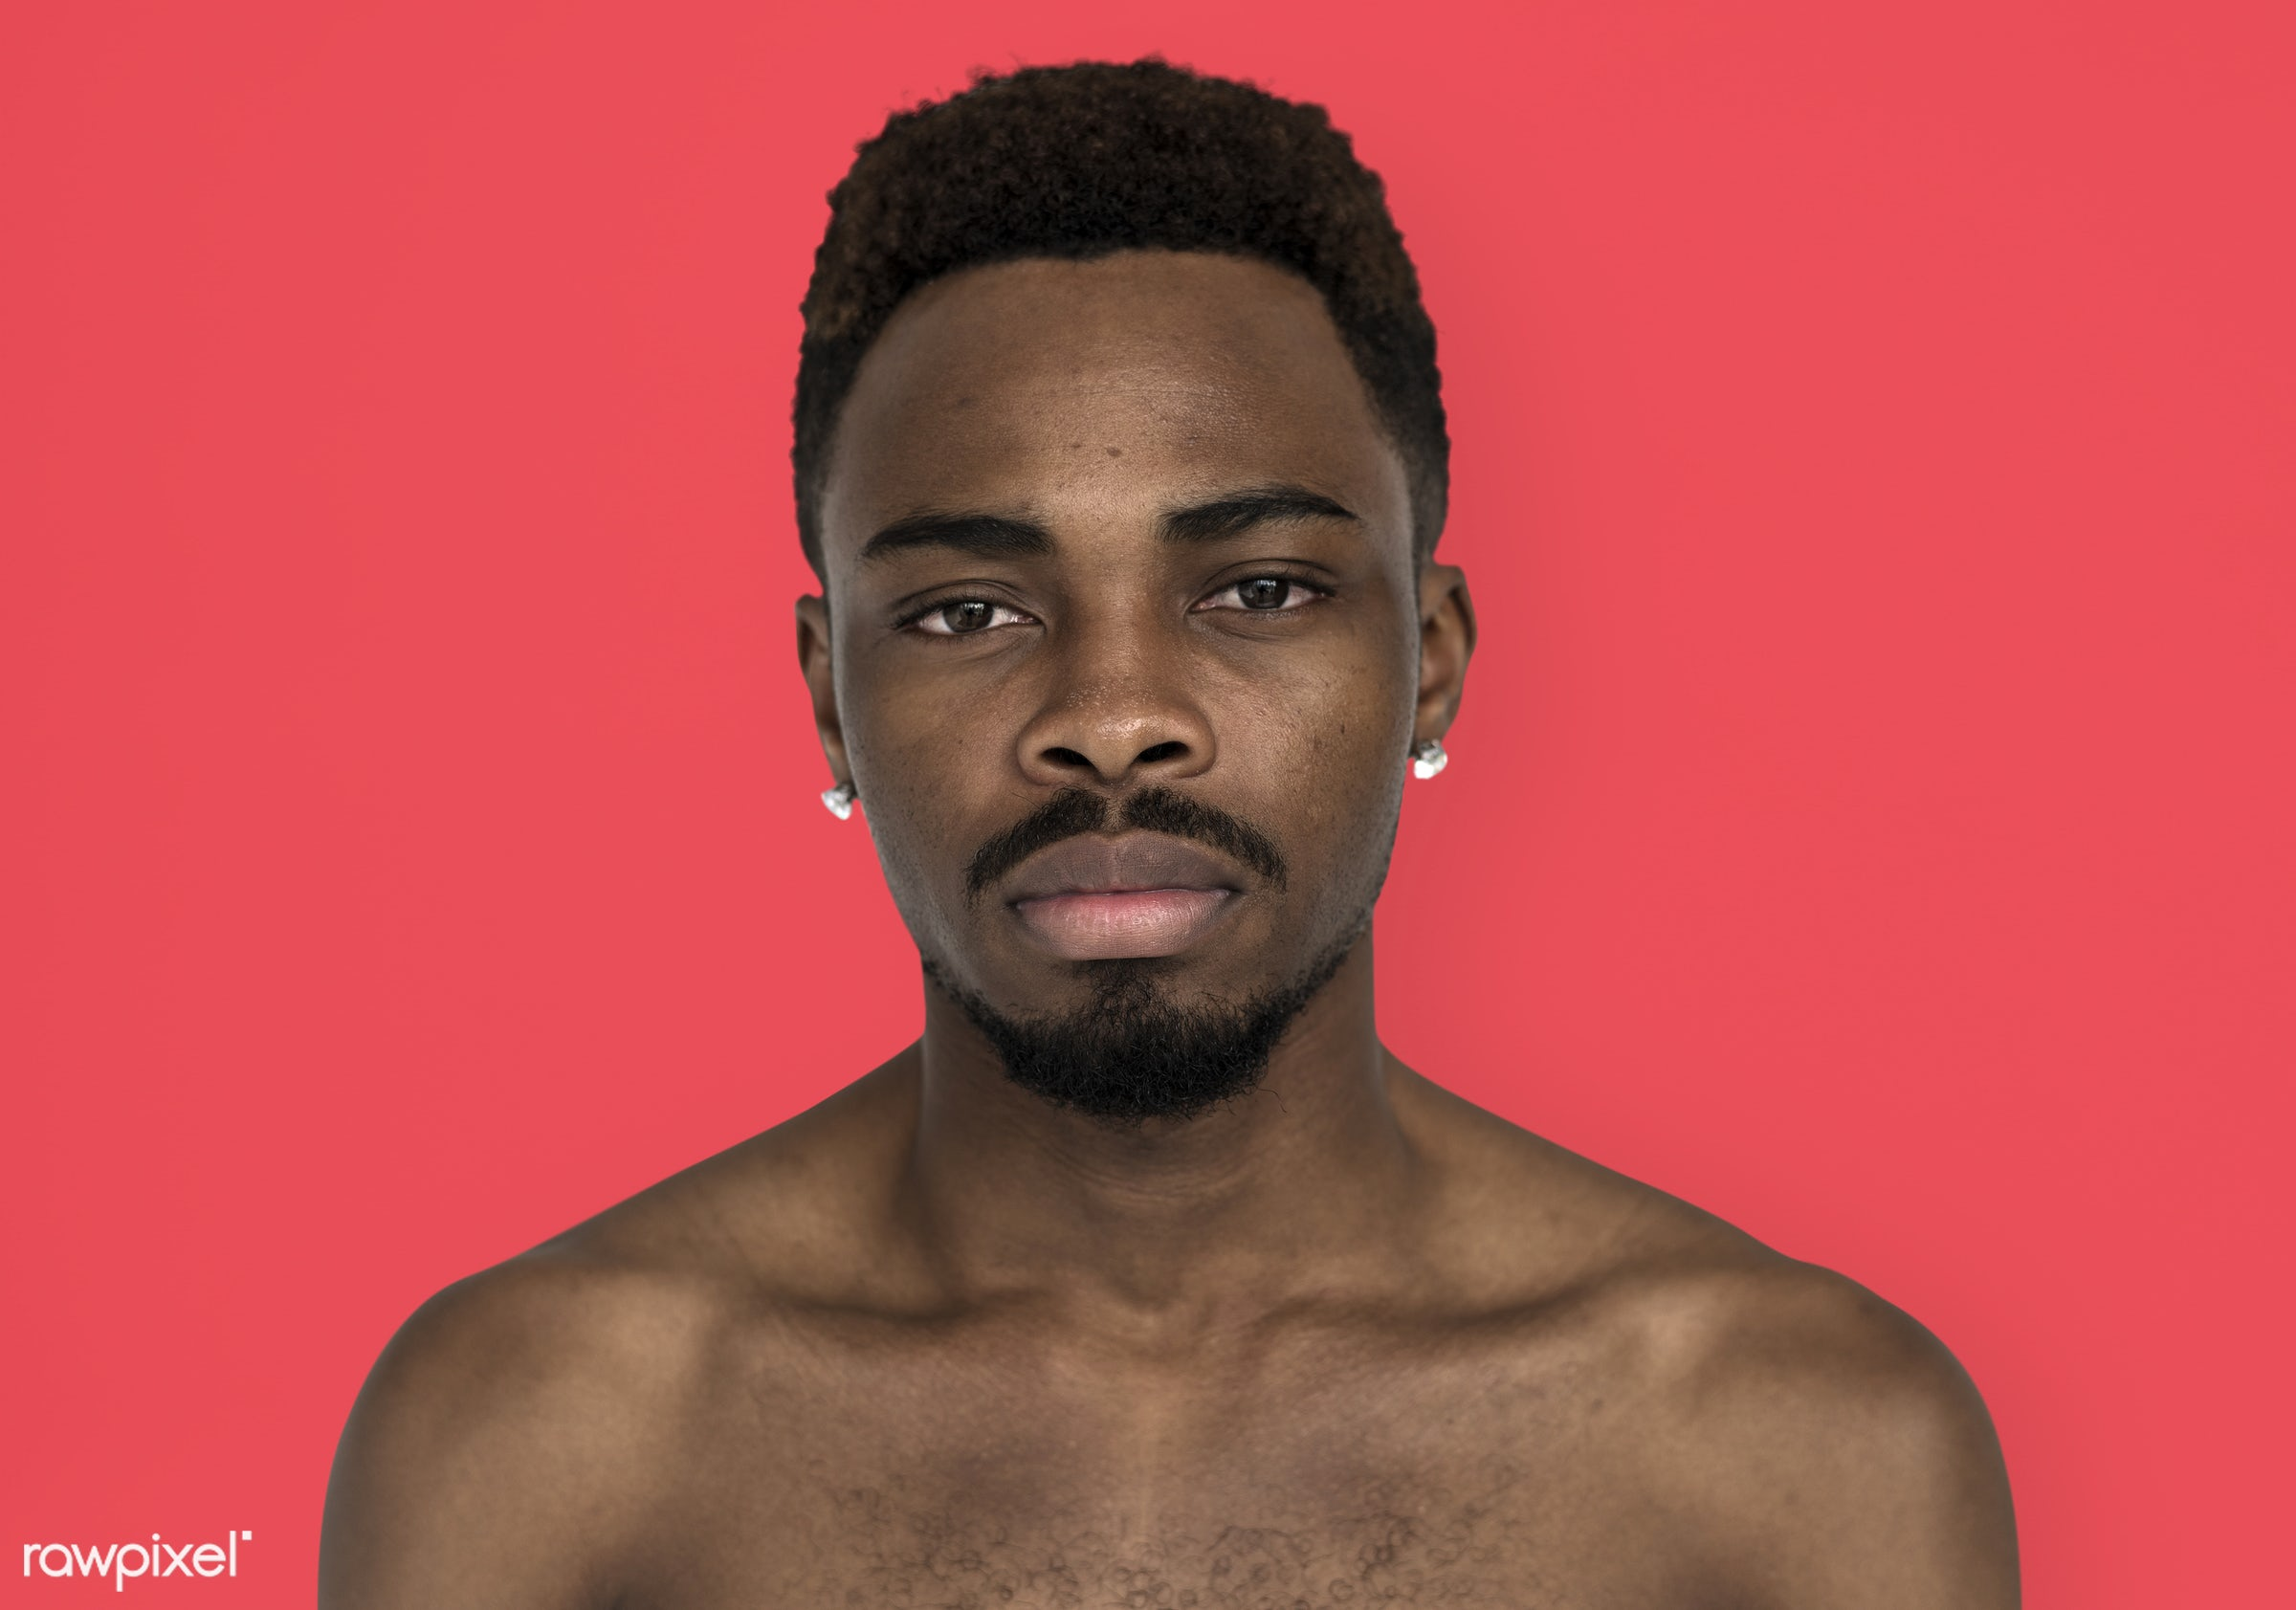 studio, face, person, people, bare chest, solo, cold, serious, man, black, earrings, isolated, orange, topless, guy, african...